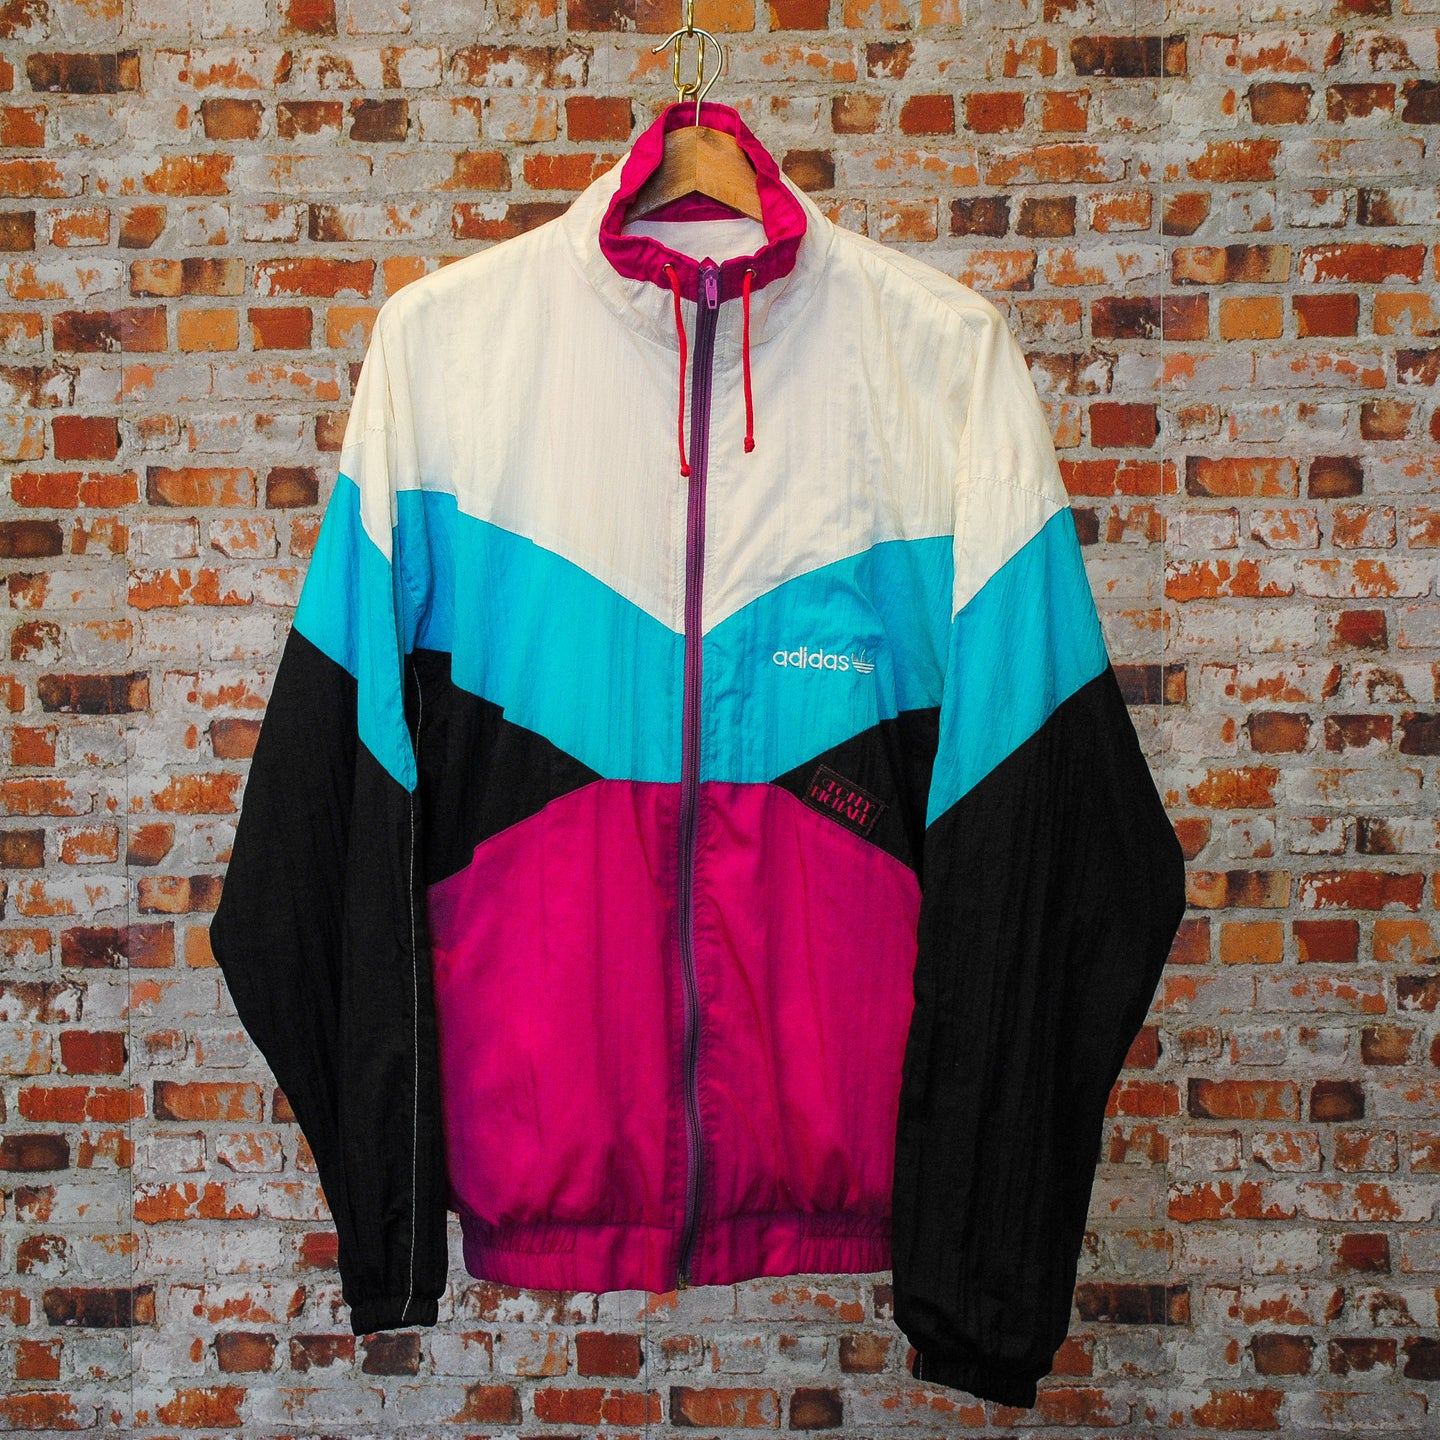 fresh-vintage-tony-richard-adidas-trainingsjas-voorkant